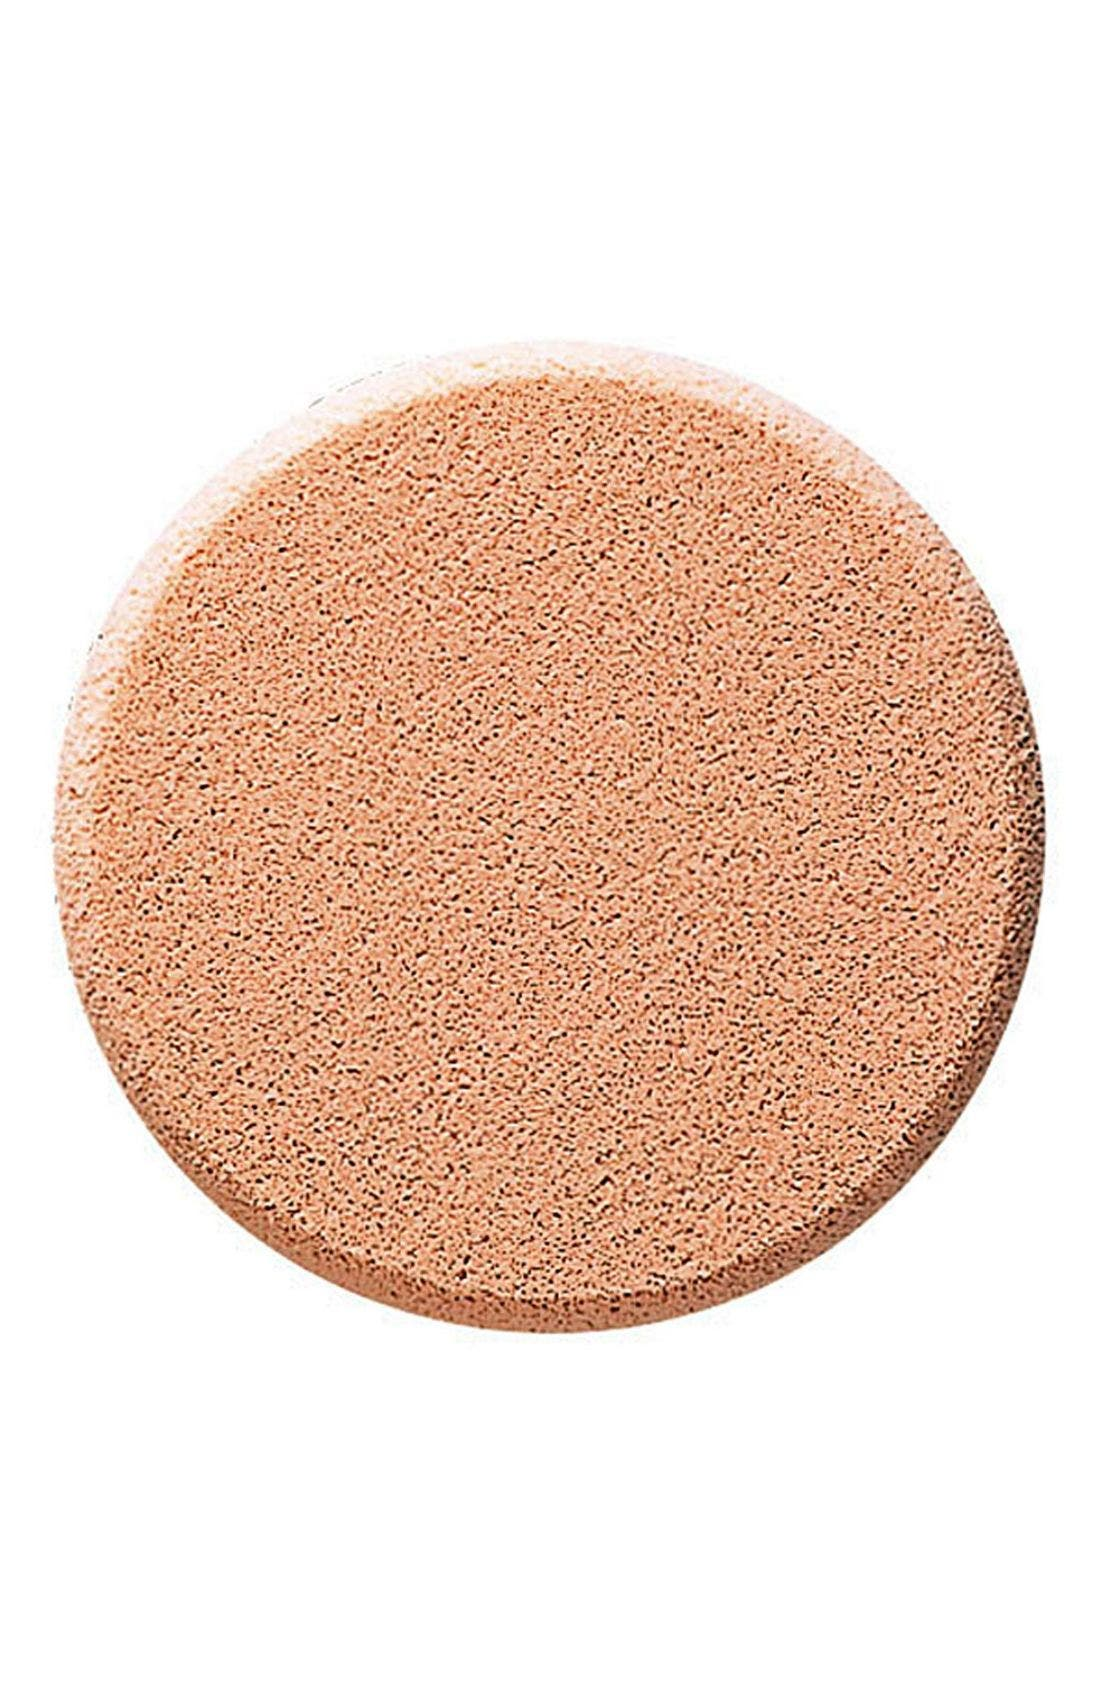 'The Makeup' Sponge Puff for Foundation,                         Main,                         color, NO COLOR